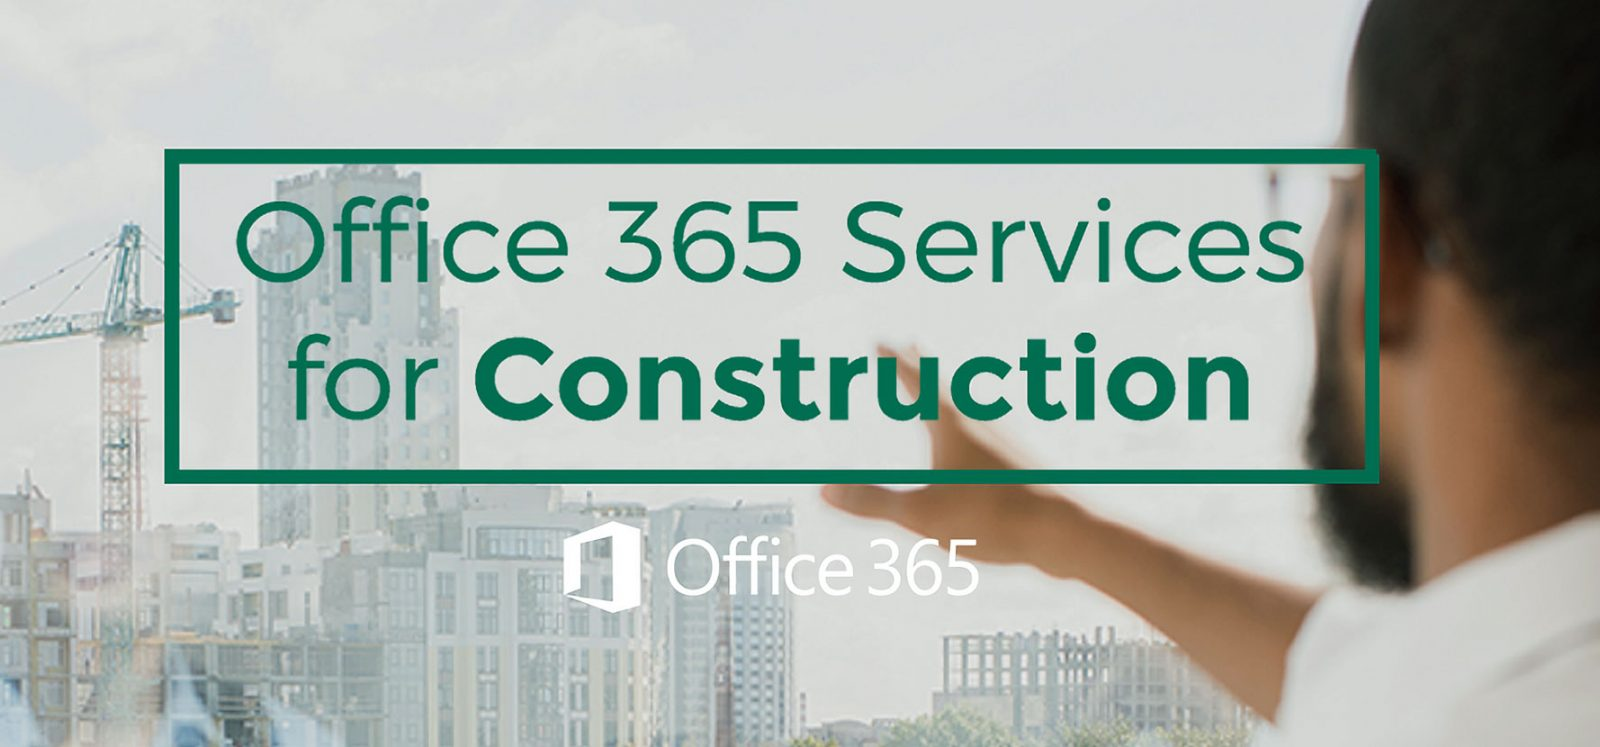 Moving to Microsoft Office 365 for Project Management? What You Need to Know